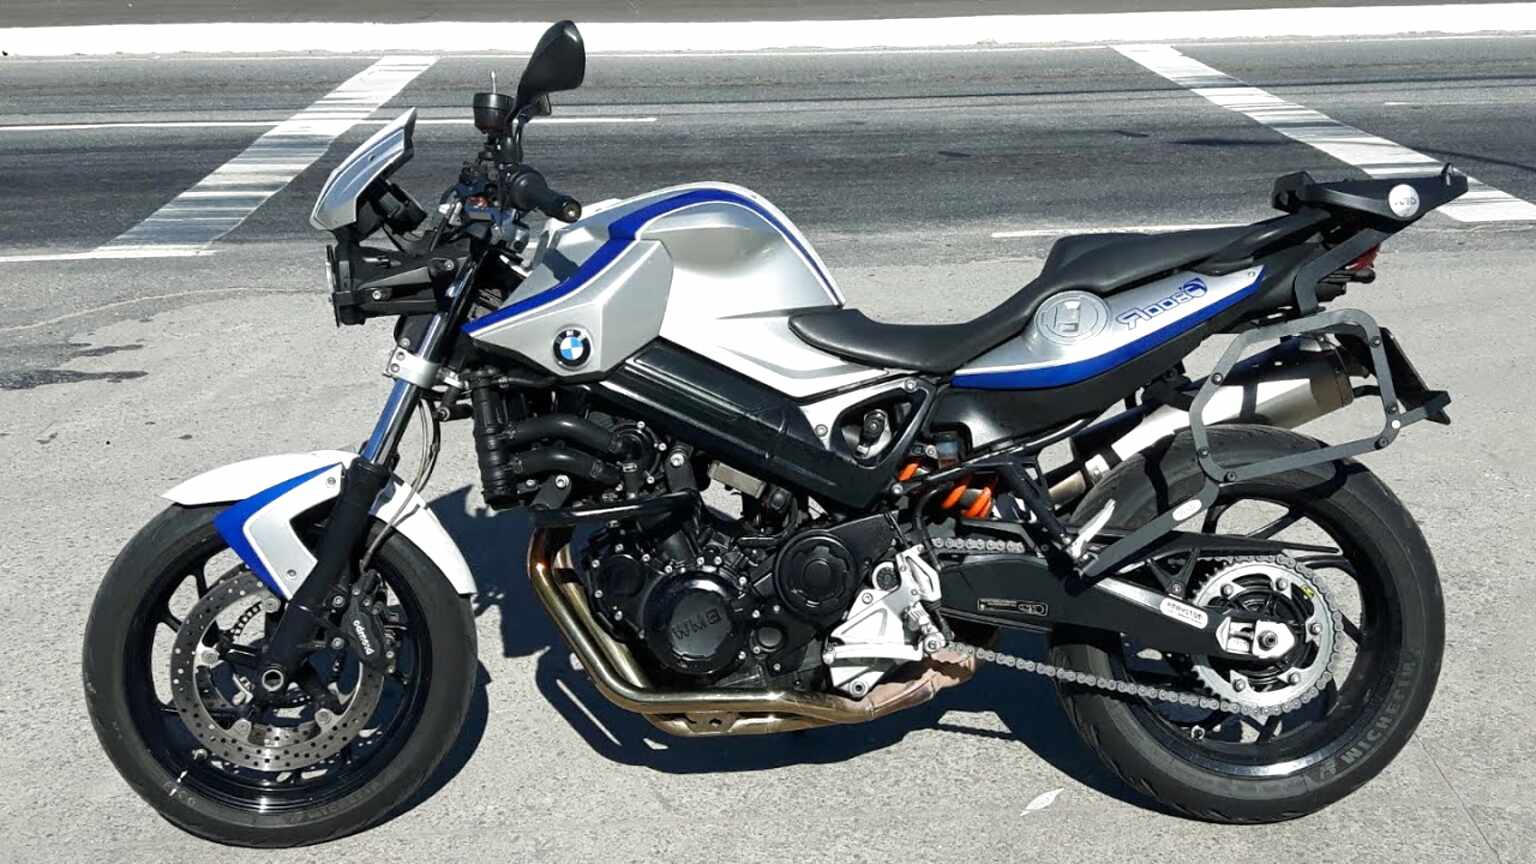 f800 r d'occasion